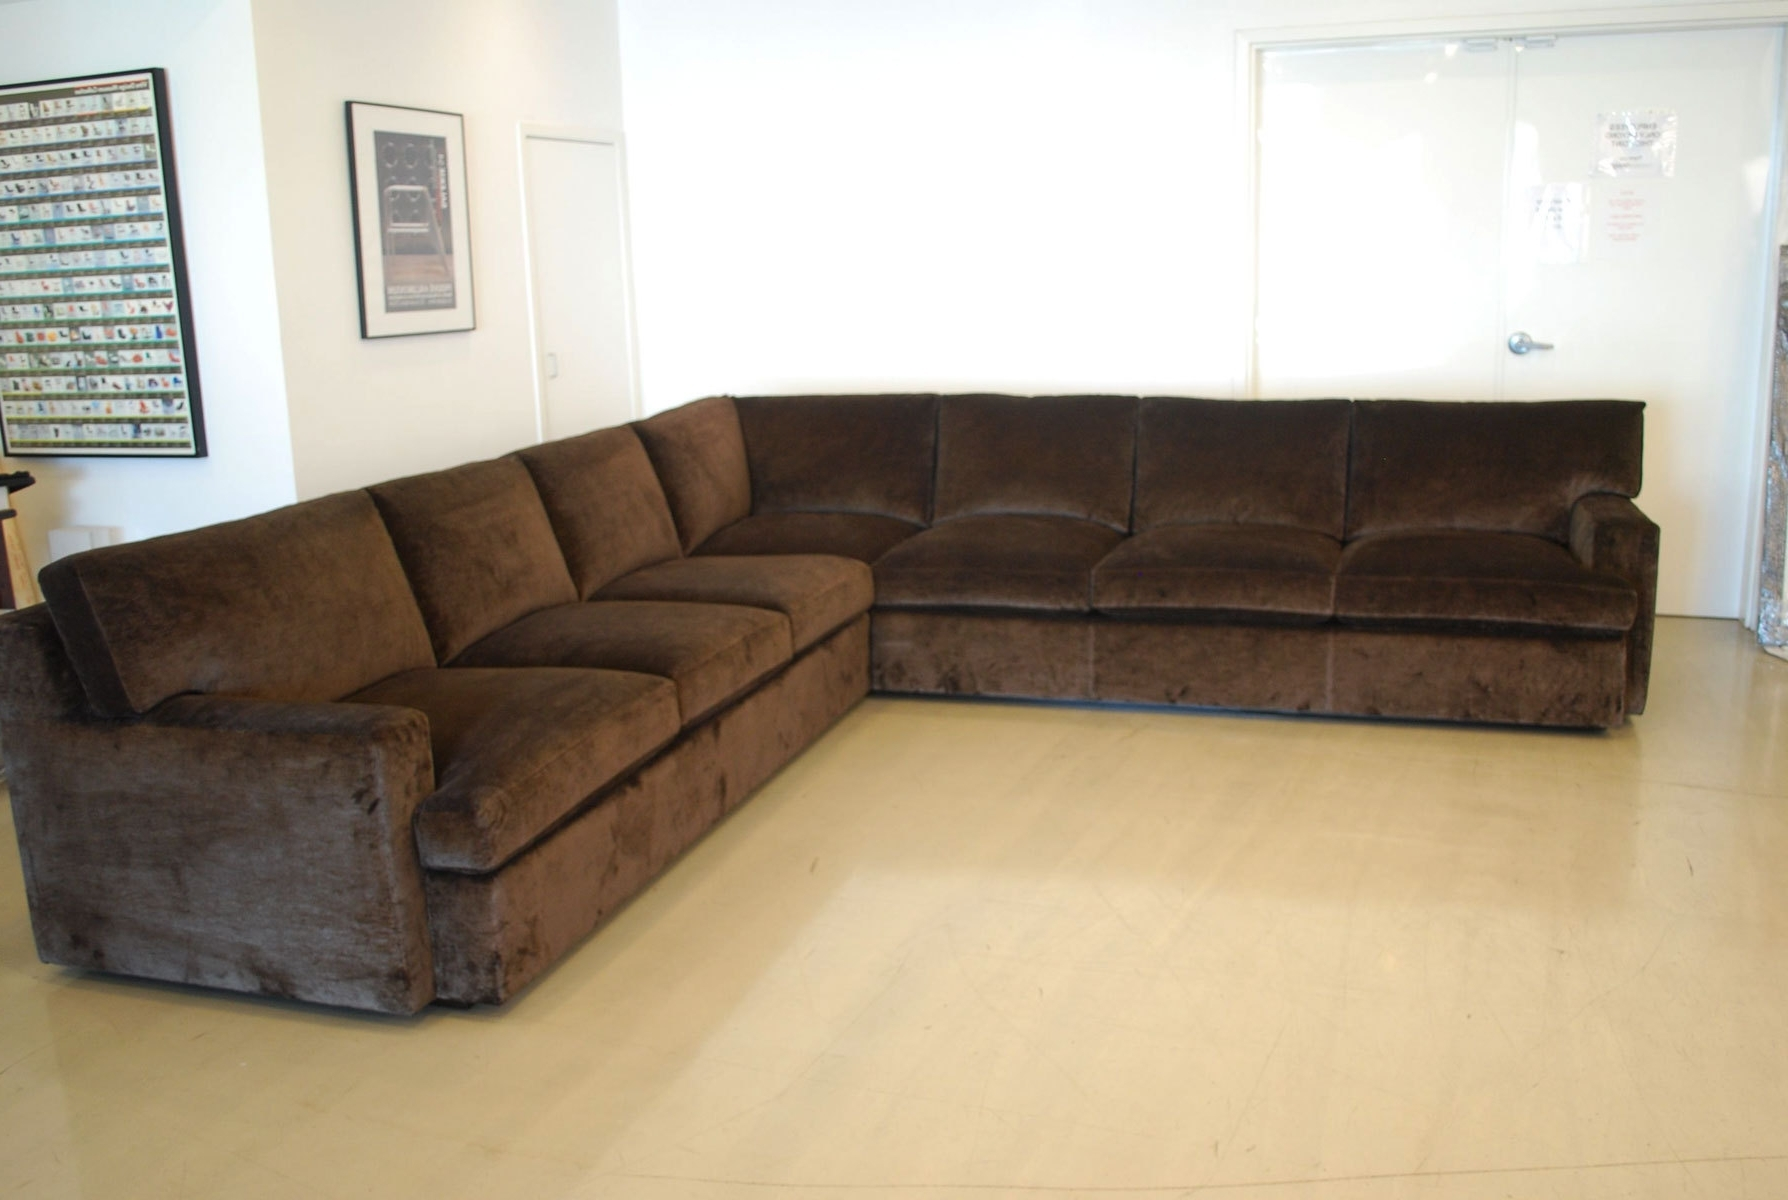 Trend Large L Shaped Sectional Sofas 79 In Two Piece Sectional Throughout Well Known L Shaped Sectionals With Chaise (View 12 of 15)